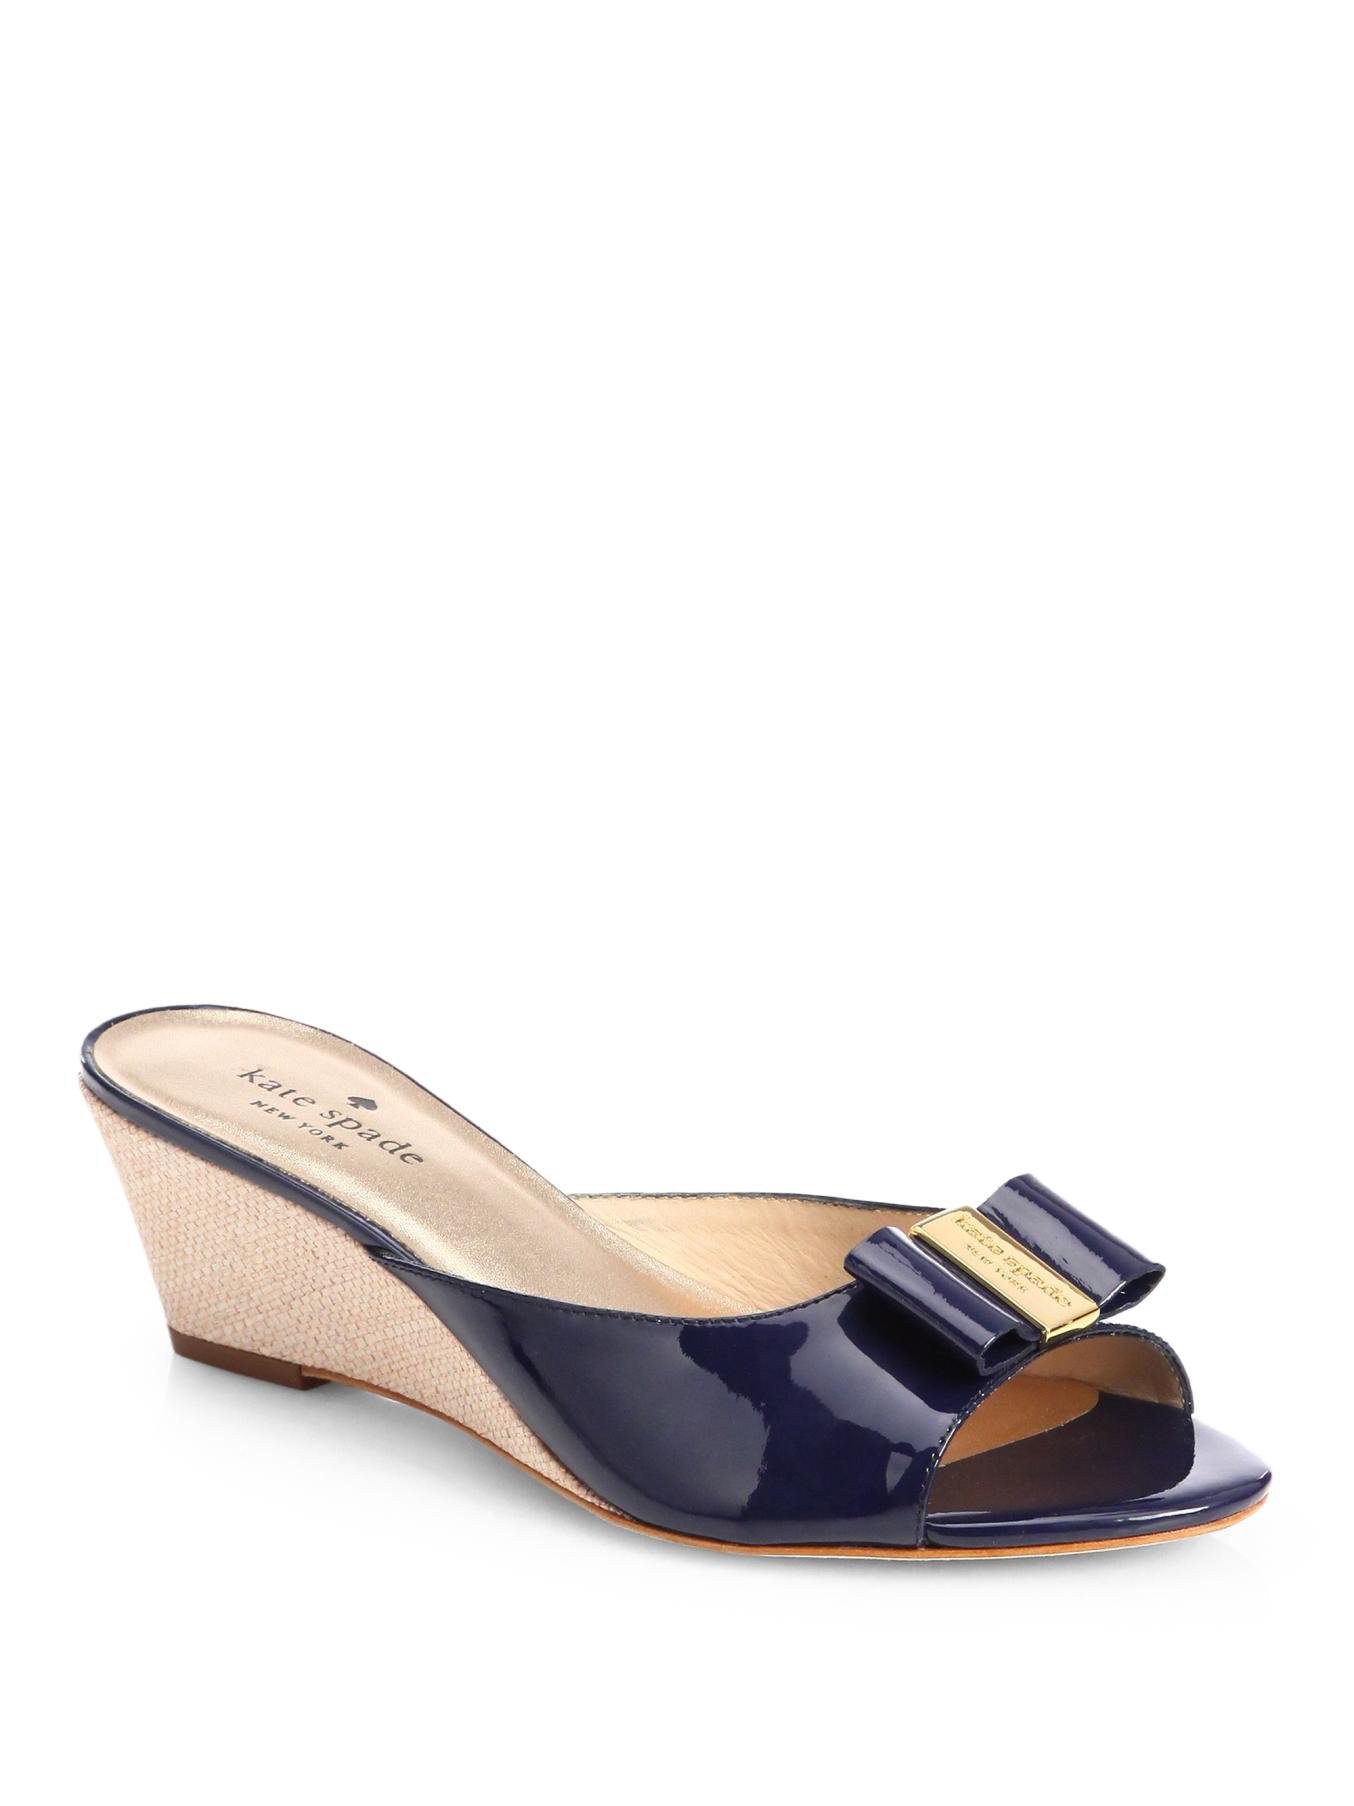 e6949f67437 kate spade new york Blue Dixie Patent Leather Wedge Slides